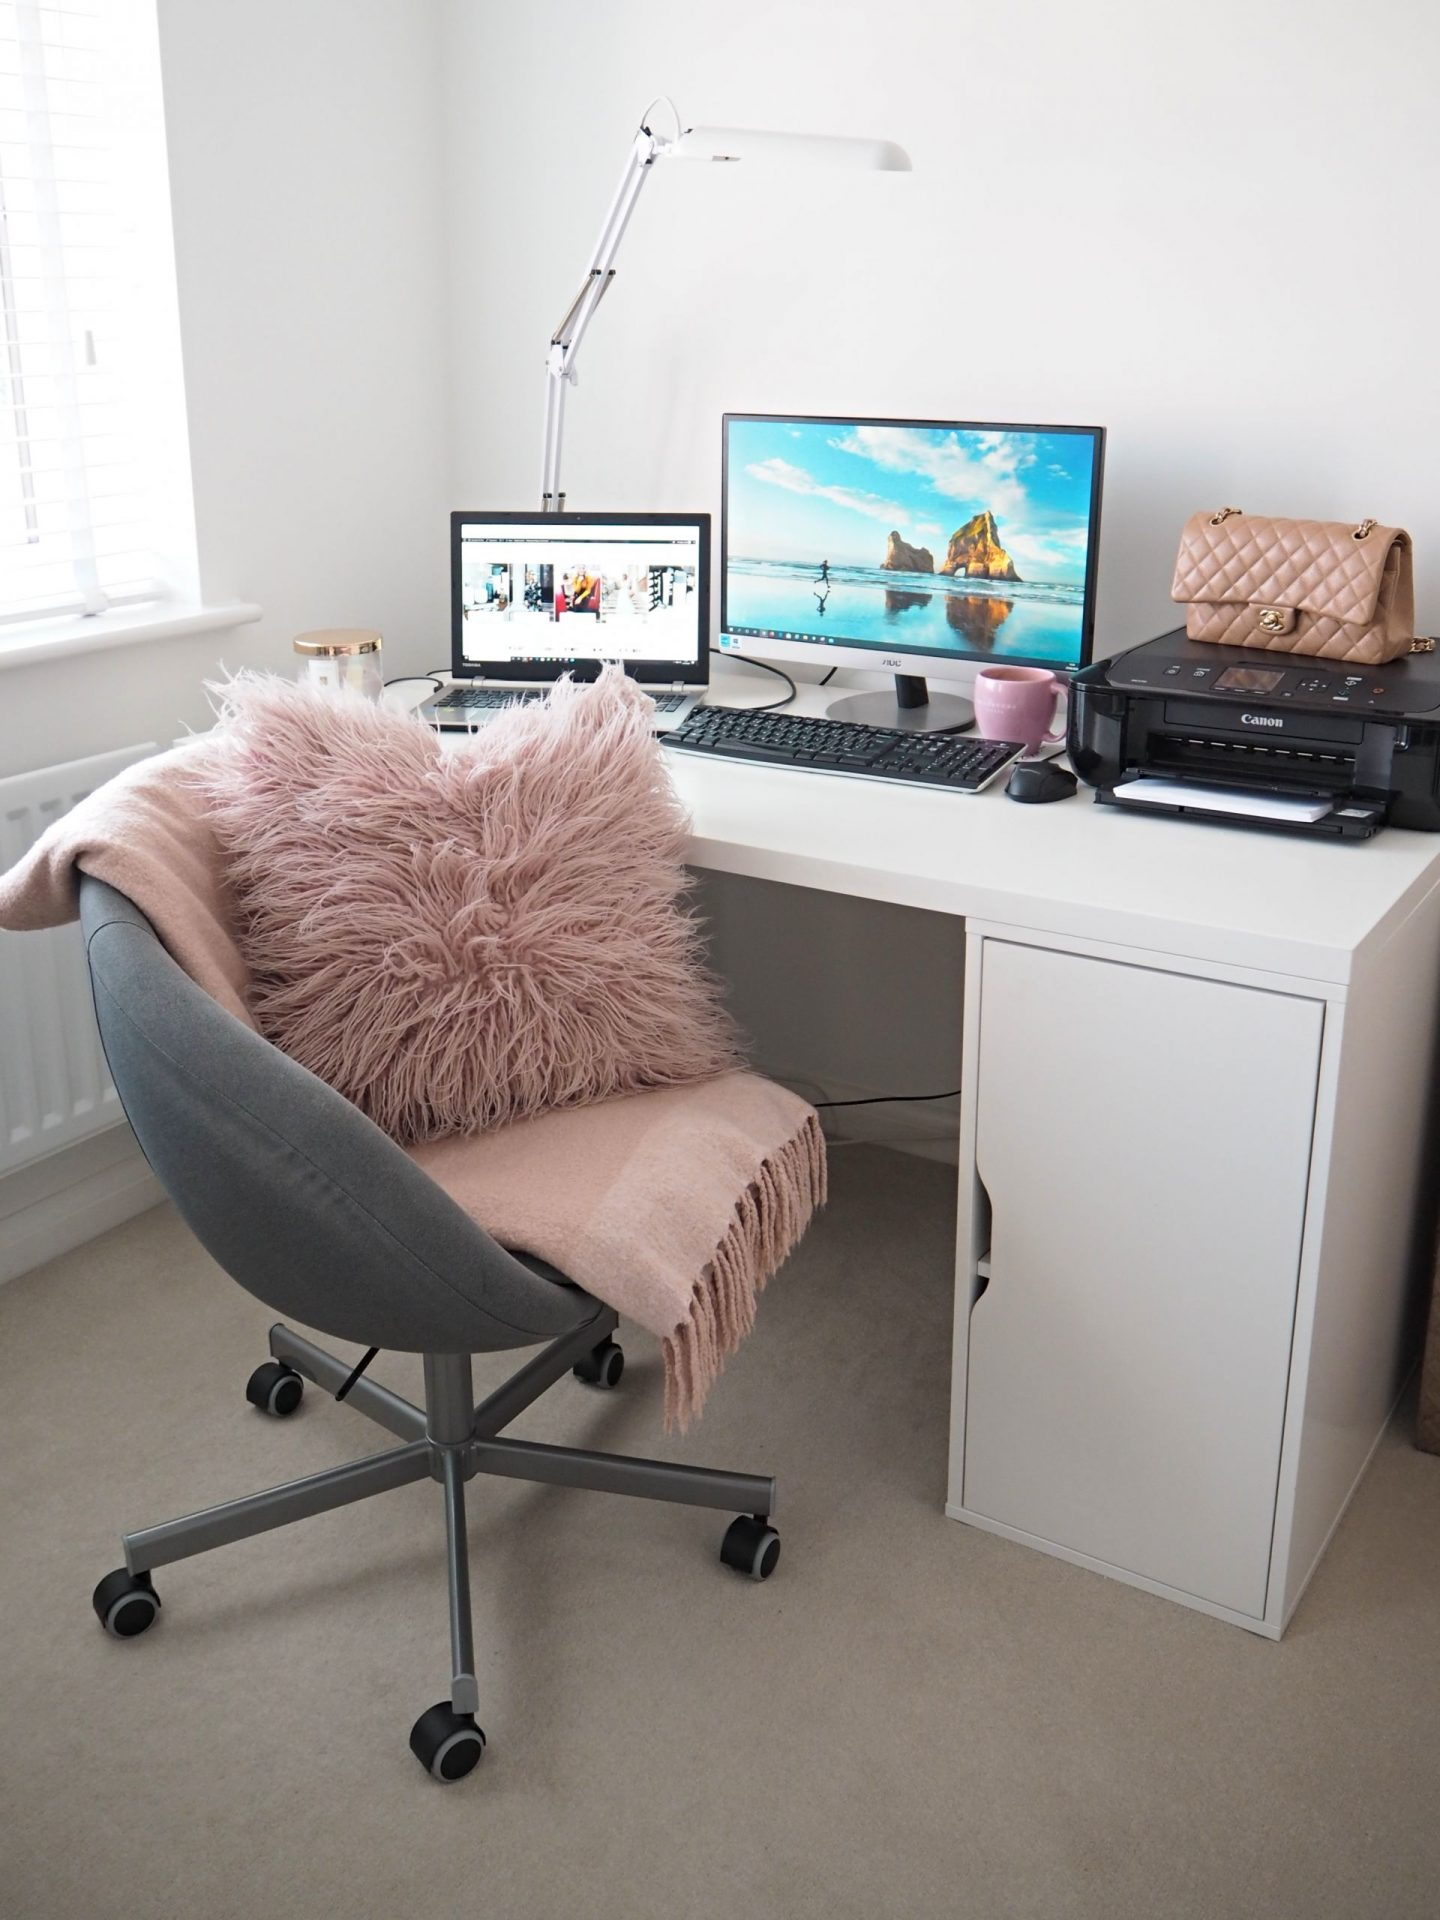 11 Ways To Stay Motivated While Working From Home